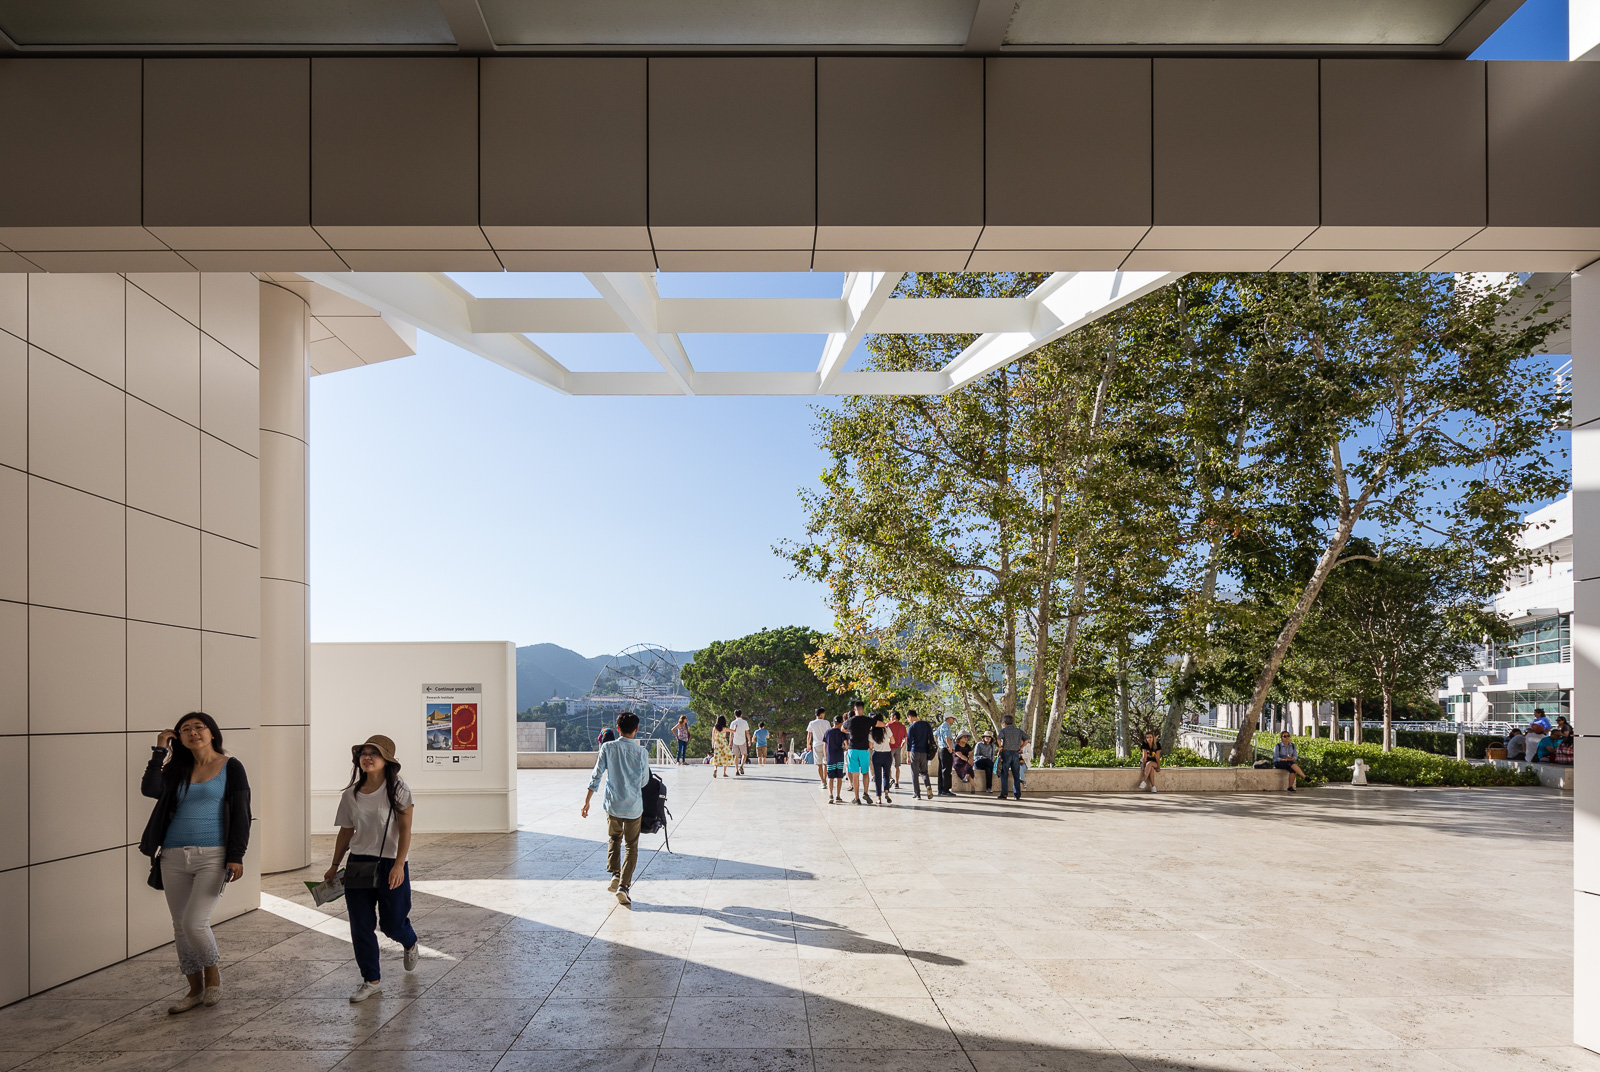 Exteriors and terraces of the Getty Center museum in Los Angeles, California